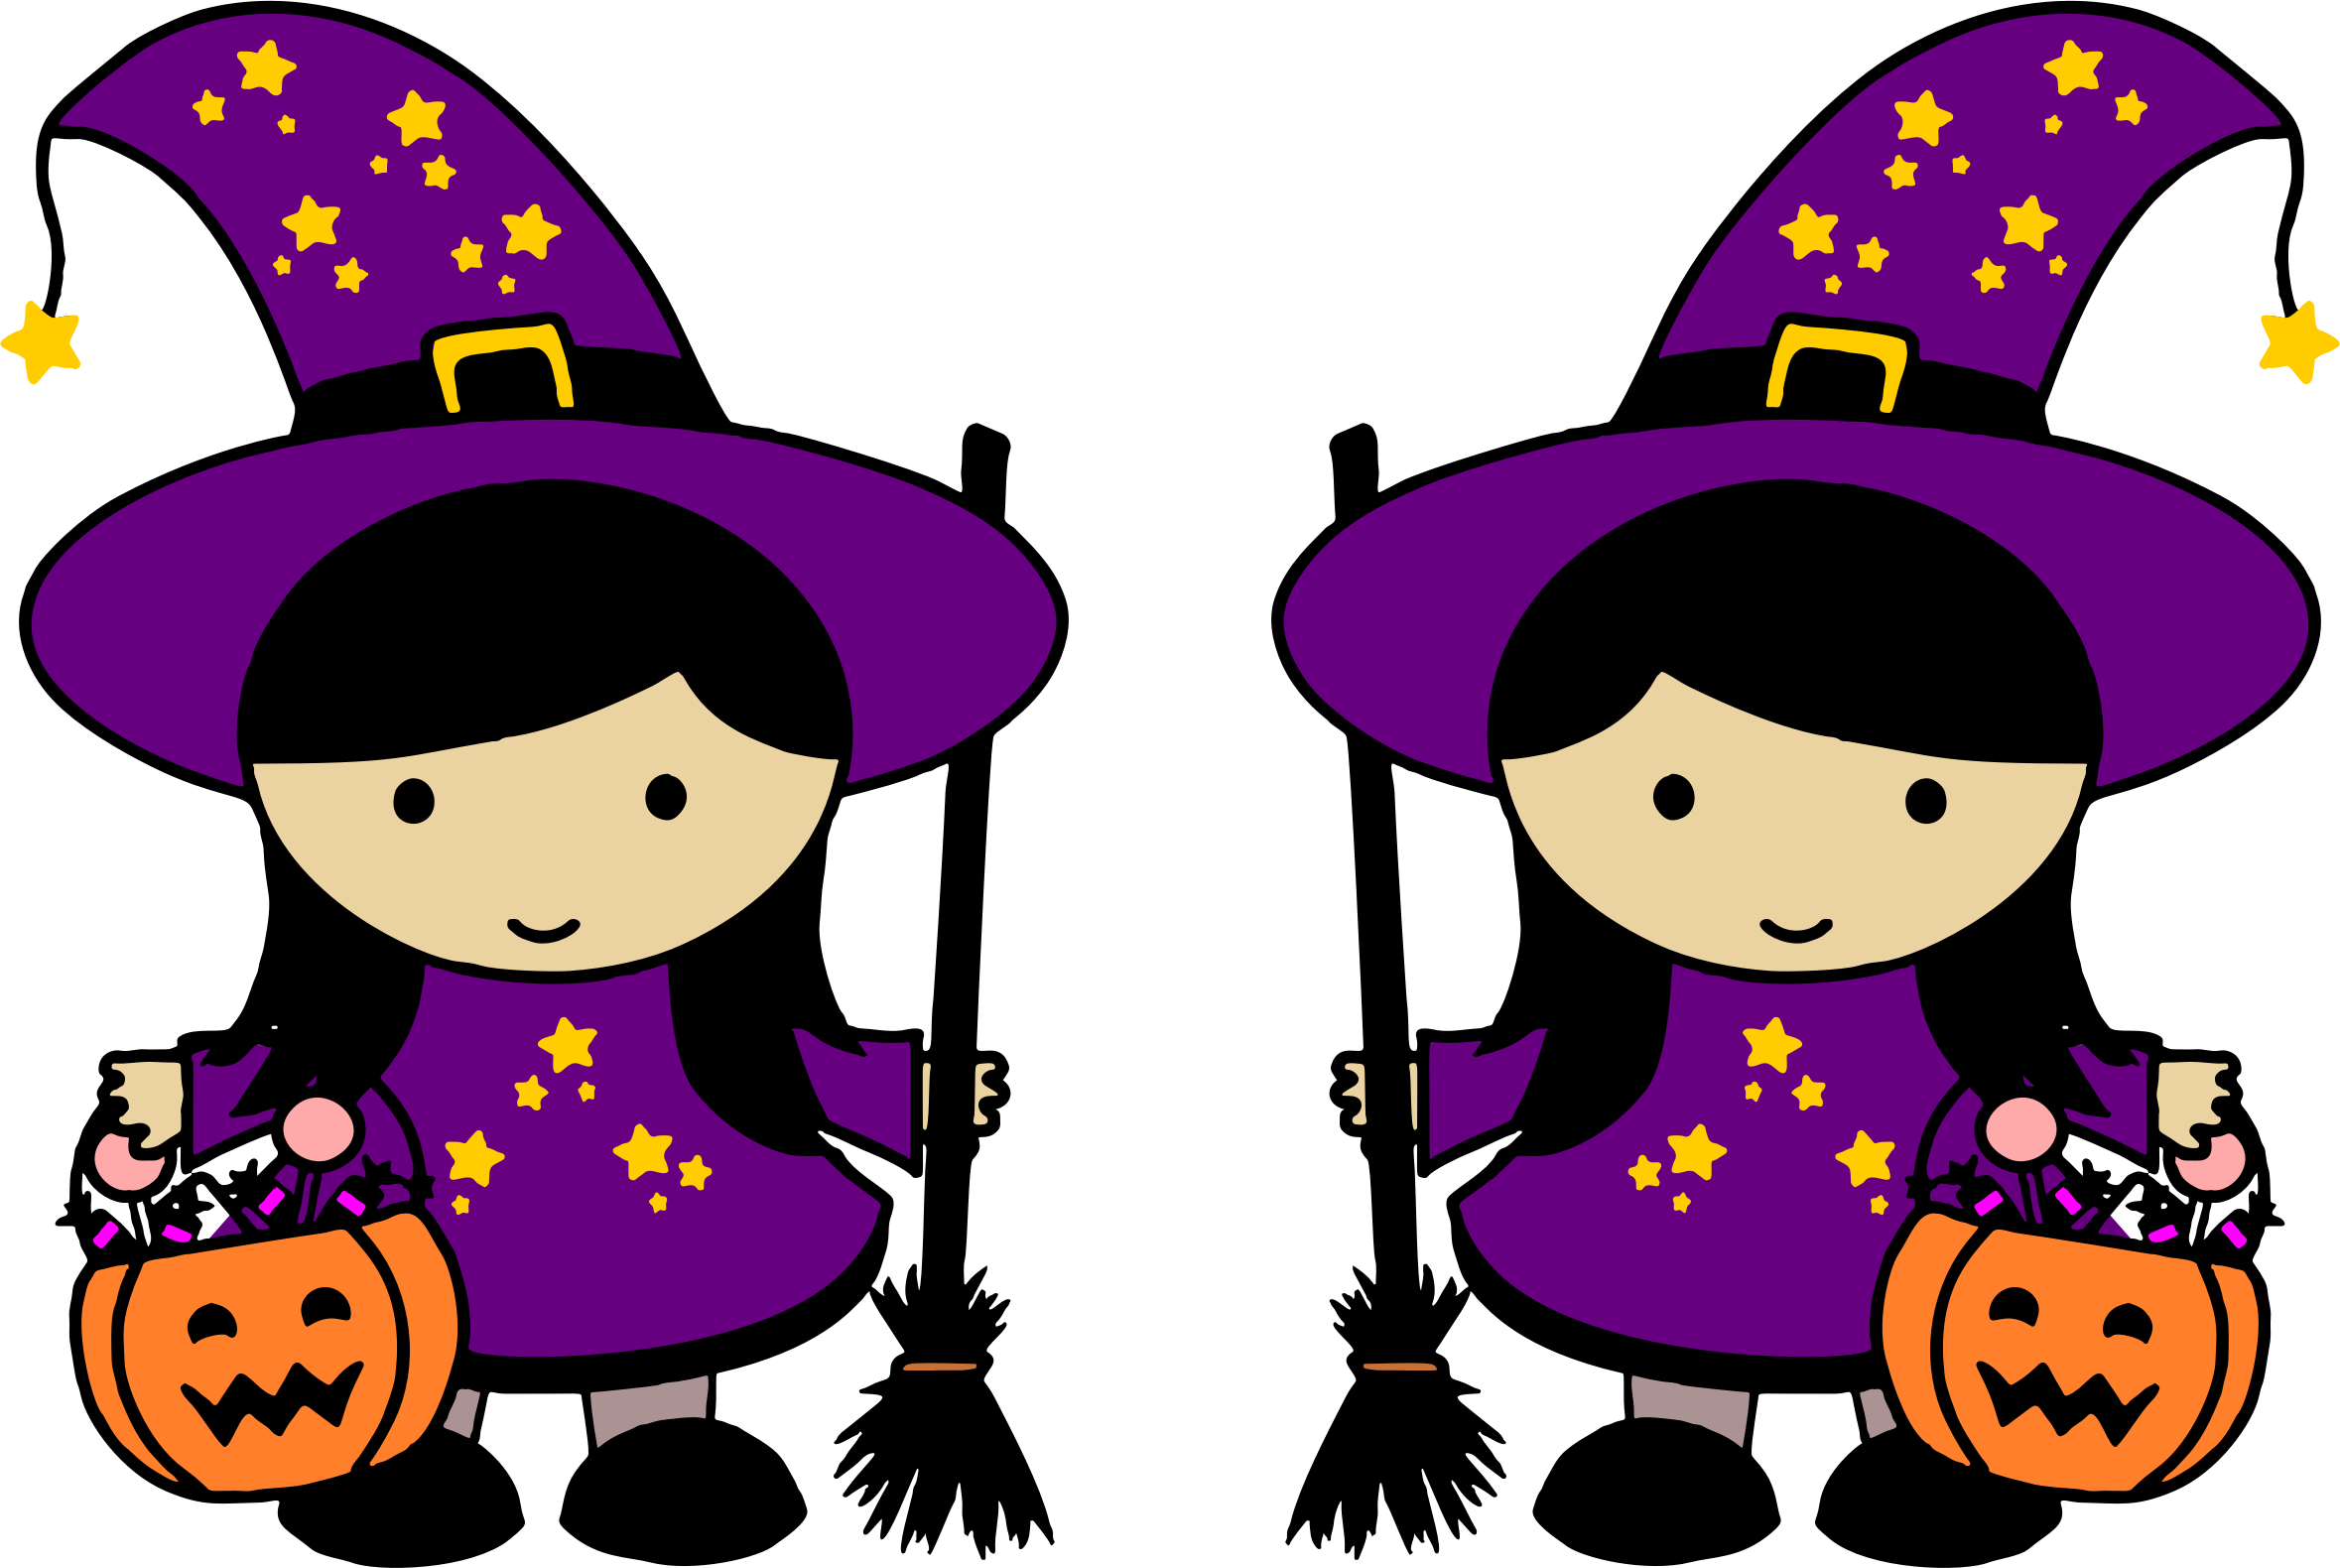 Twin halloween witches big. Witch clipart witchcraft